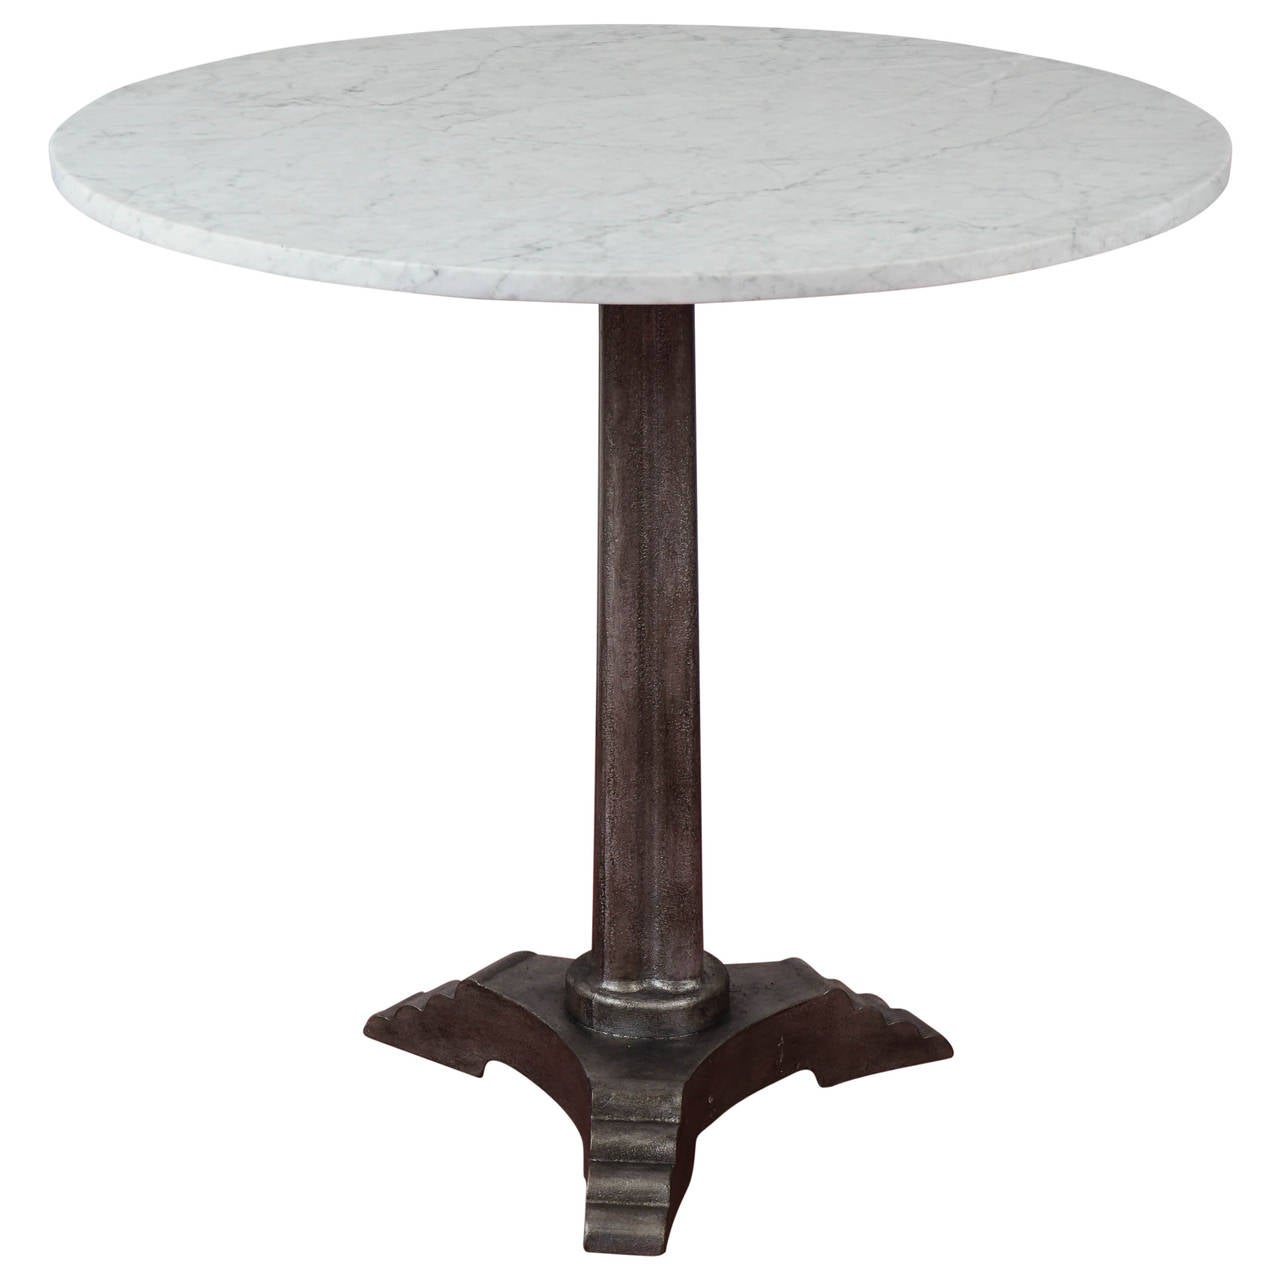 French Art Deco Marble Top Bistro Cafe Table at 1stdibs : 2929633l from www.1stdibs.com size 1280 x 1280 jpeg 58kB